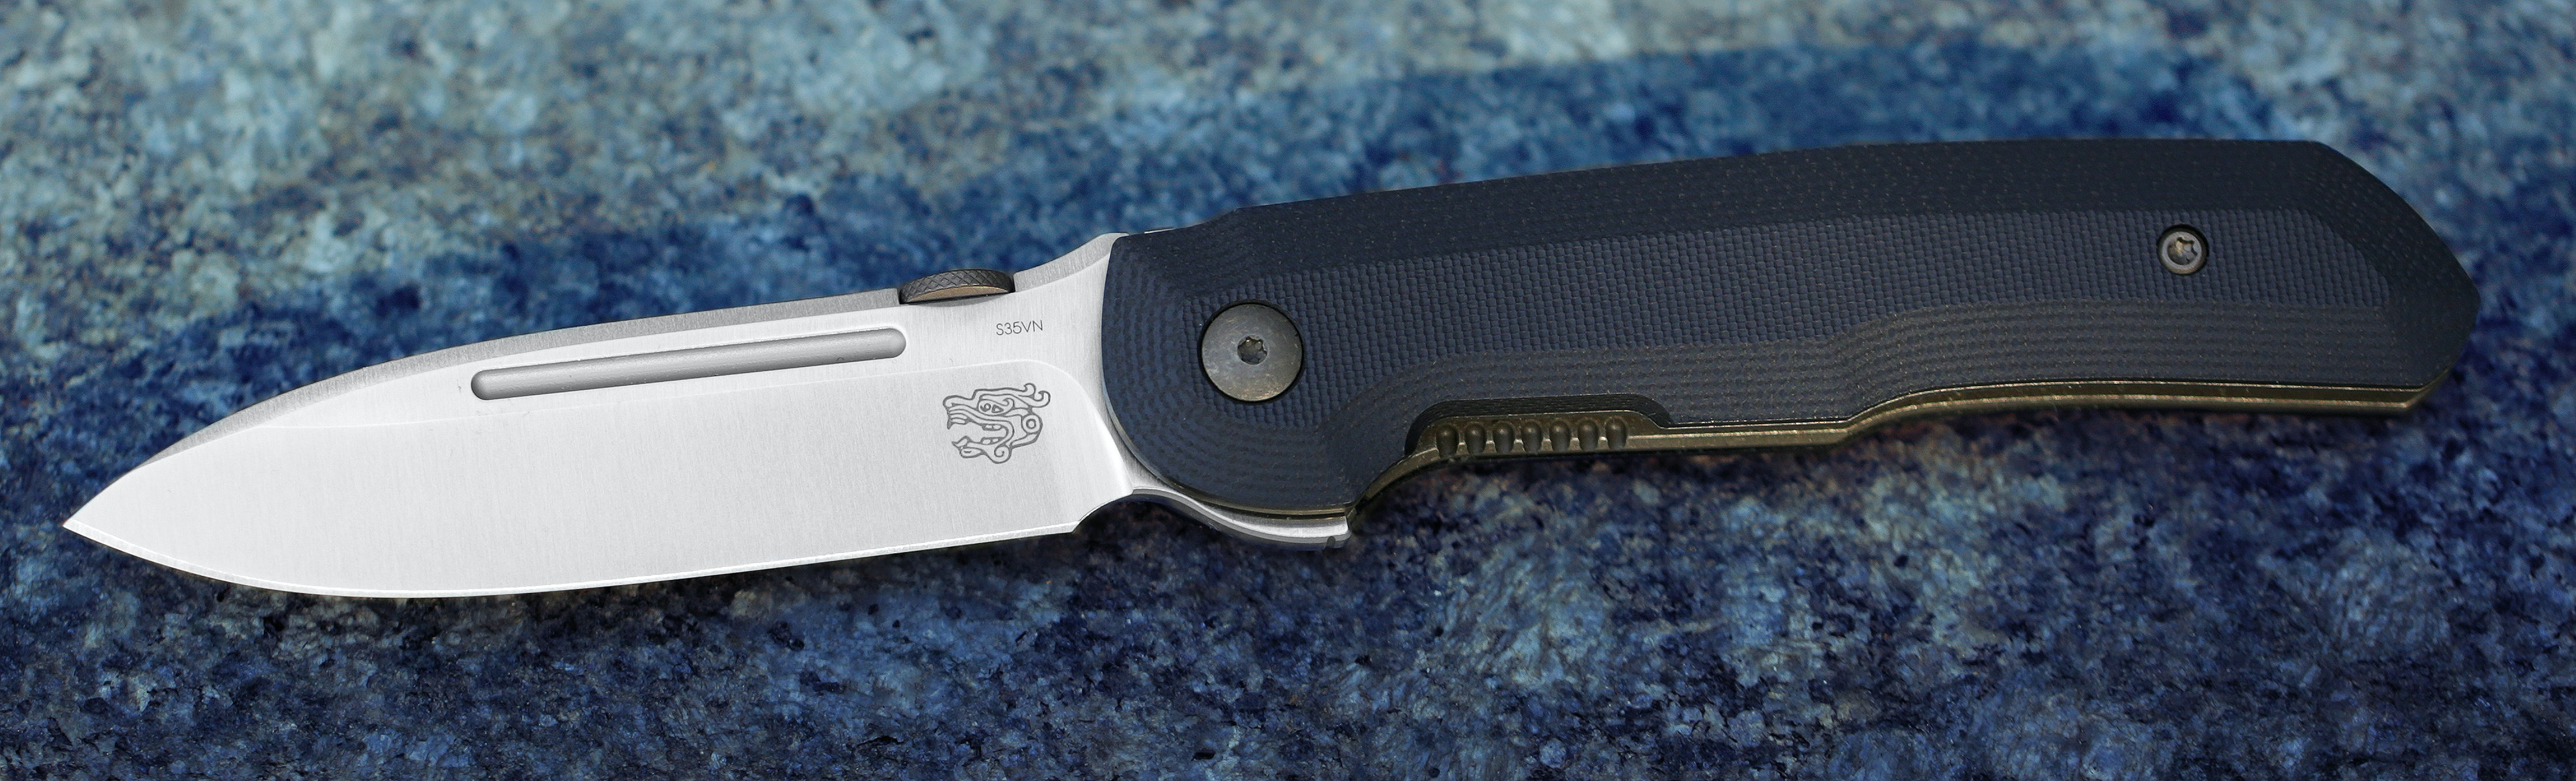 Massdrop x Terzuola Compact Tactical Folder